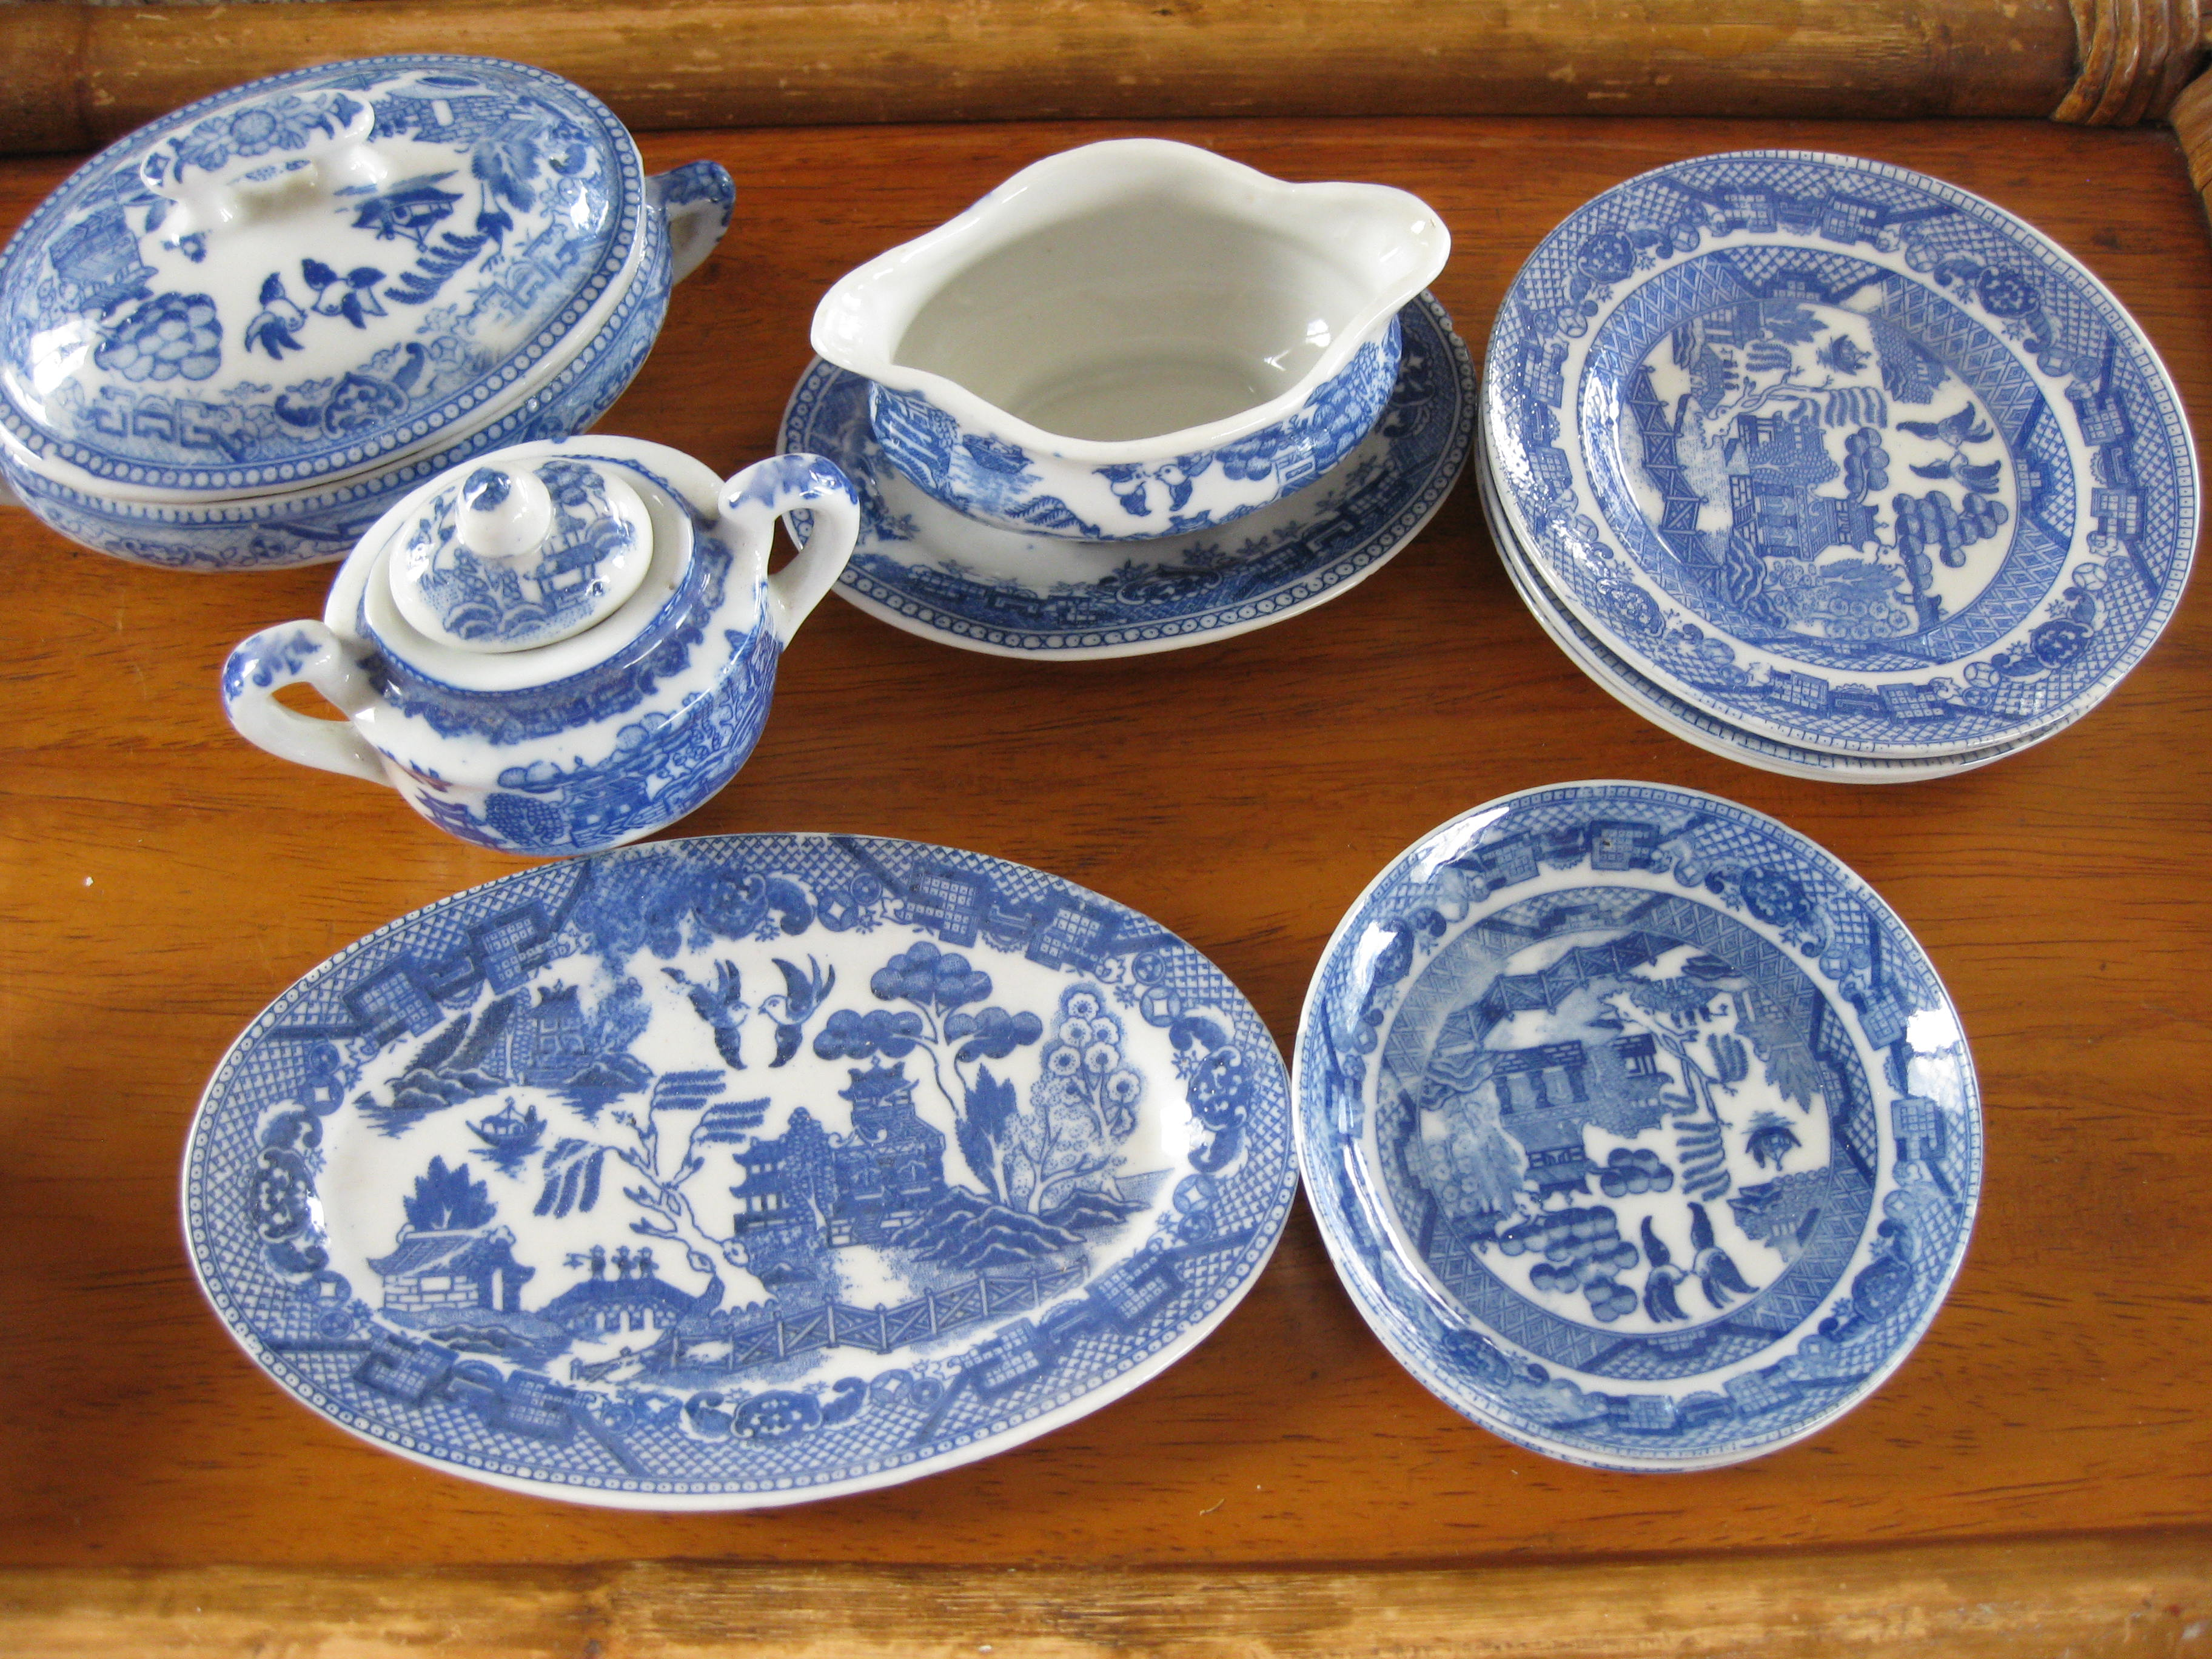 Antique dishes pictures to pin on pinterest pinsdaddy for Most valuable antiques to look for